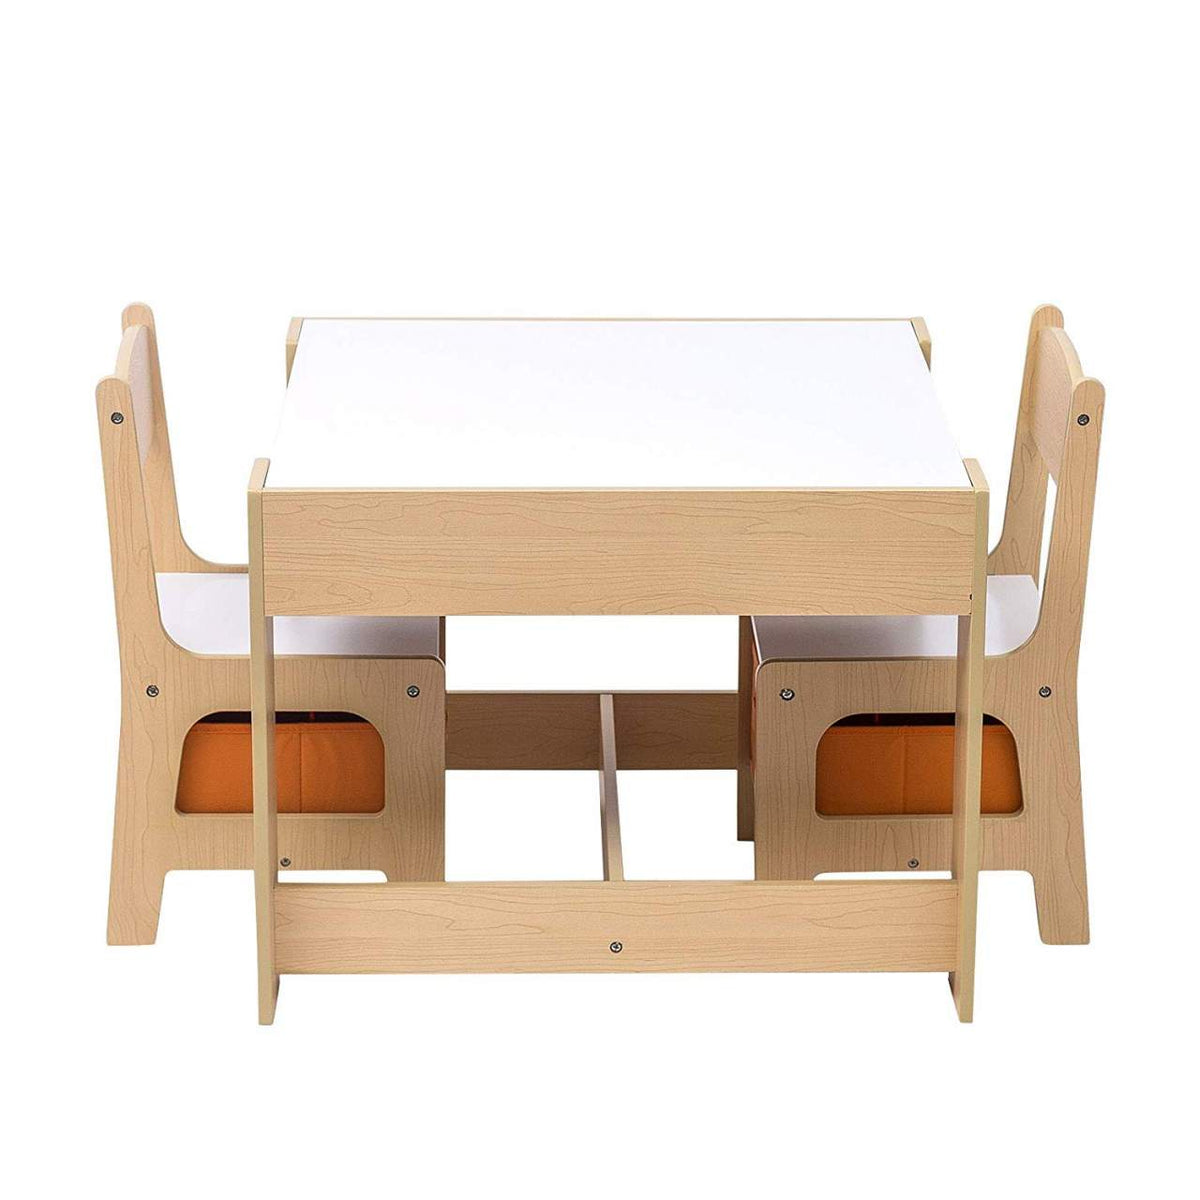 Picture of: Kid S 3 In 1 White Wooden Table 2 Chairs With Blackboard Storage Www Littlehelper Co Uk